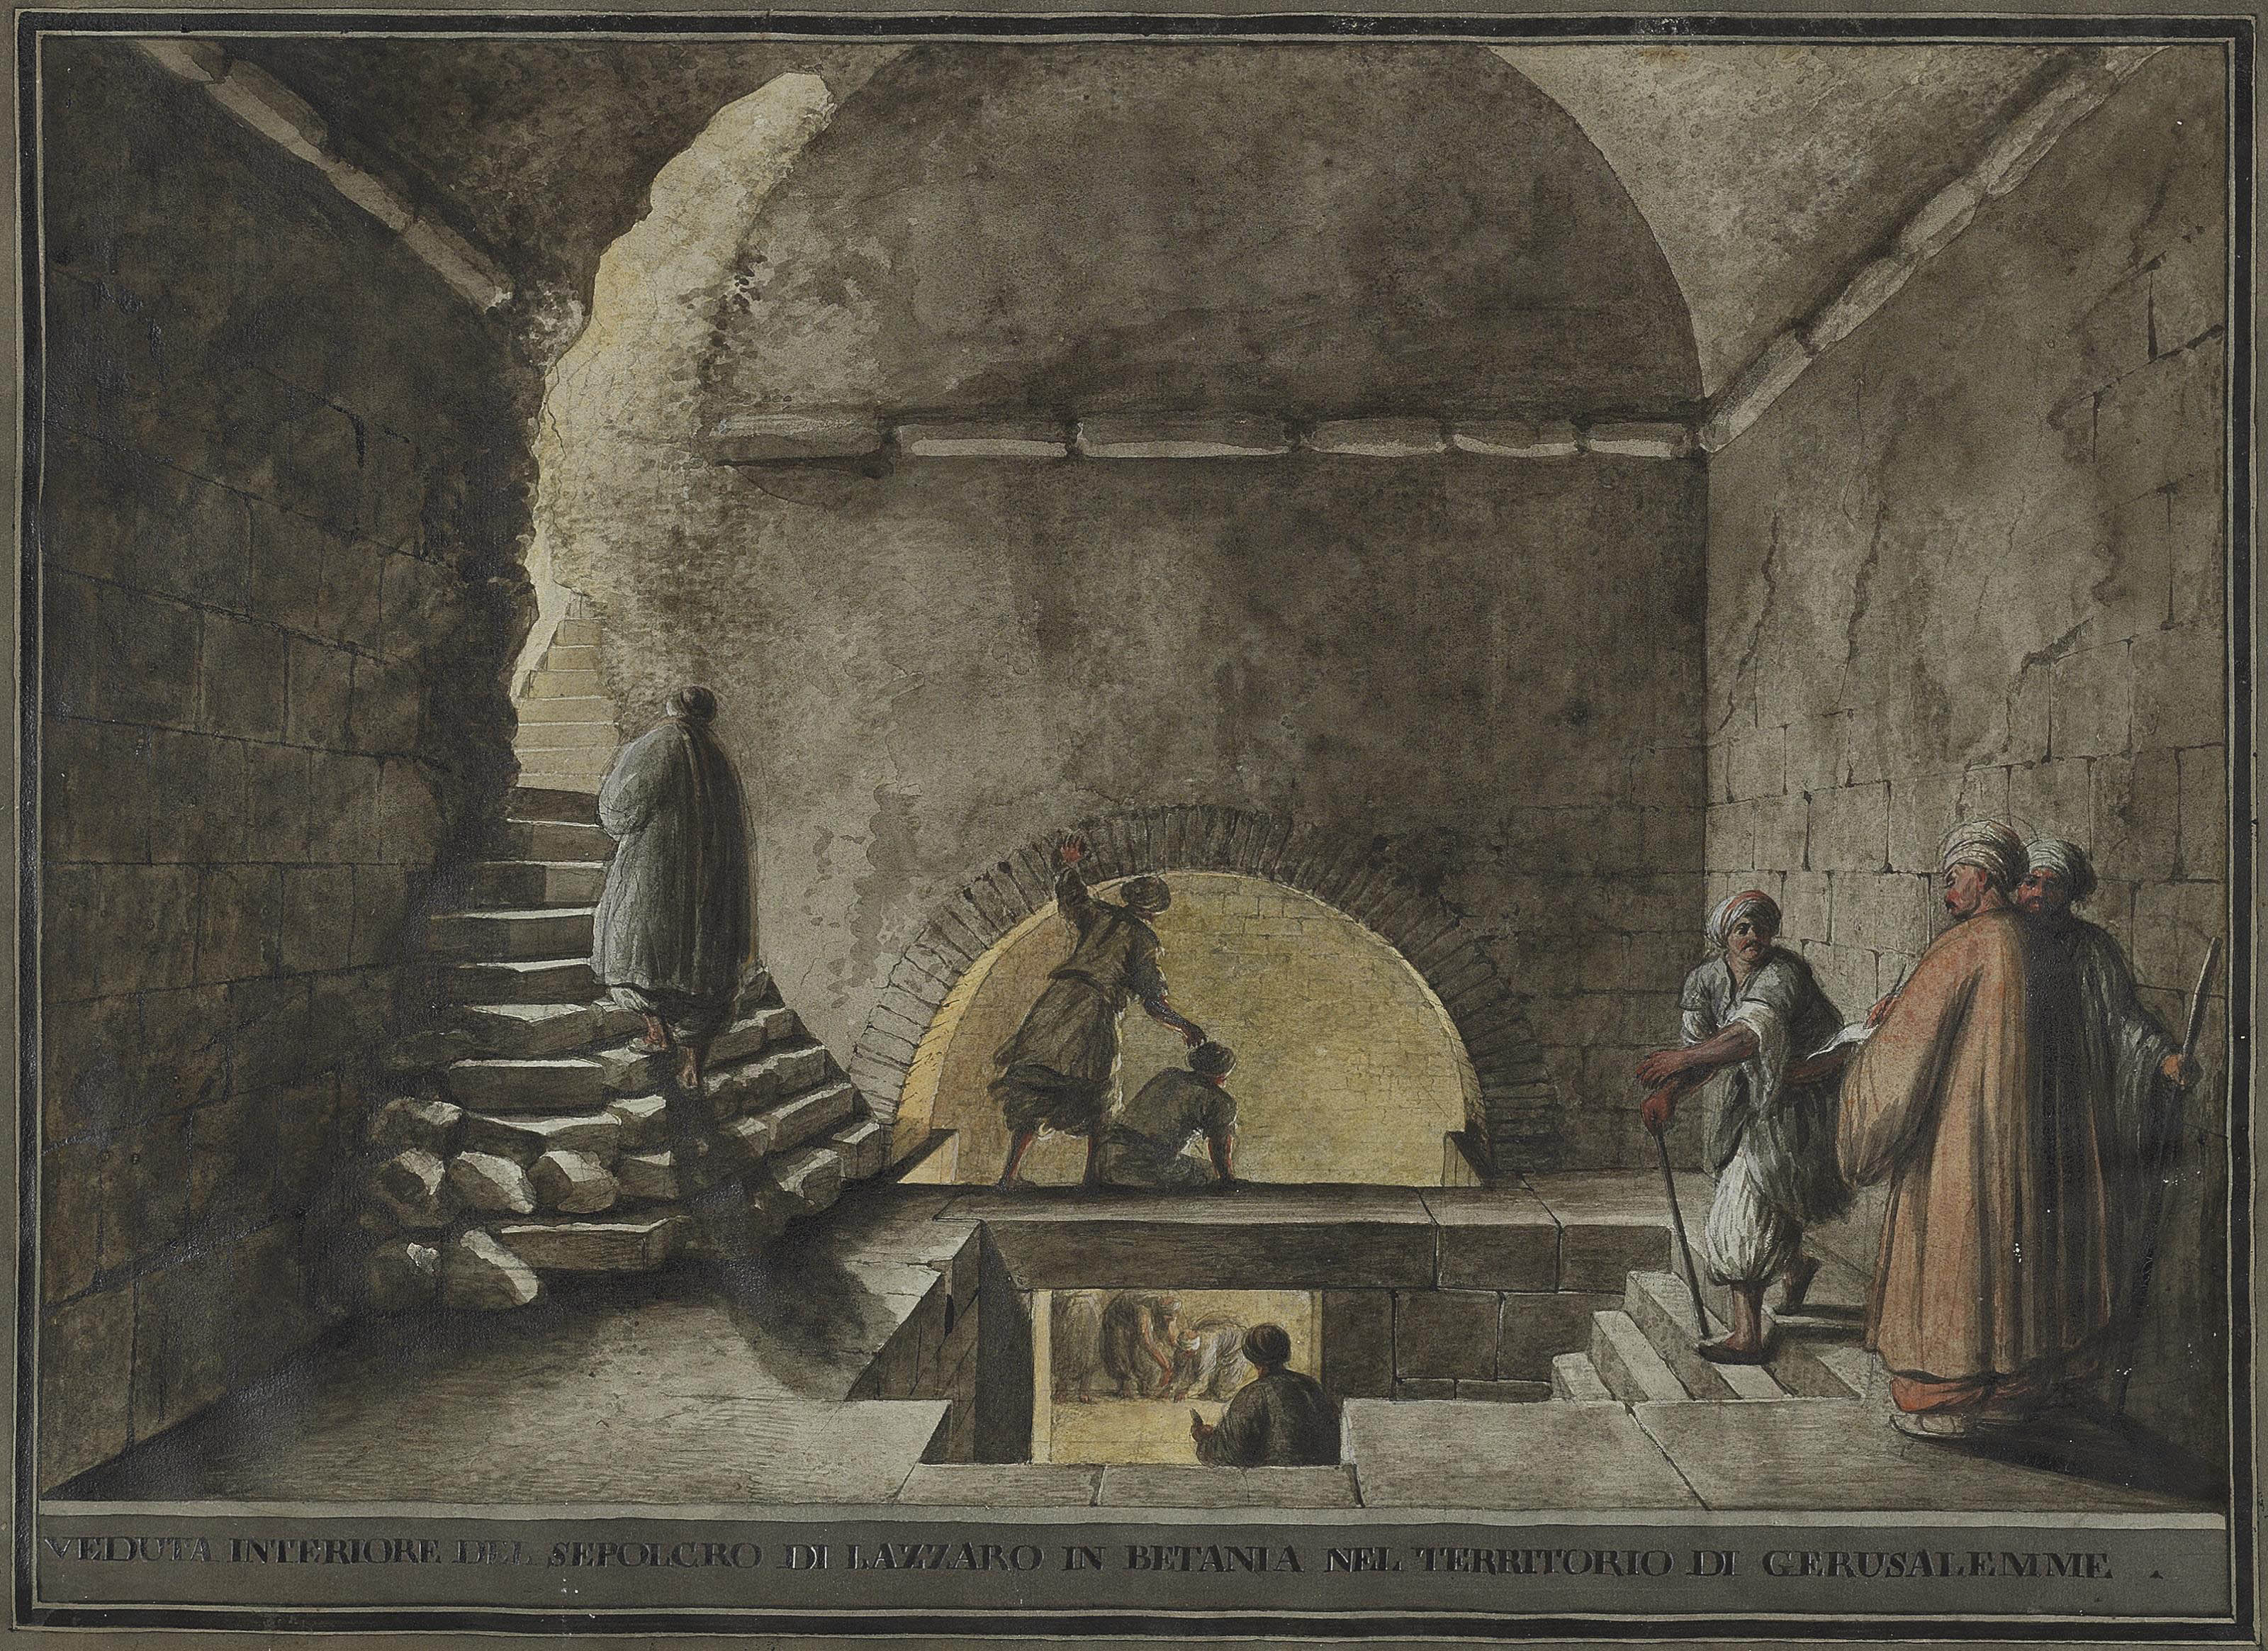 Views of Bethany: The interior of the supposed tomb of Lazarus; and View of Bethany with the tomb of Lazarus